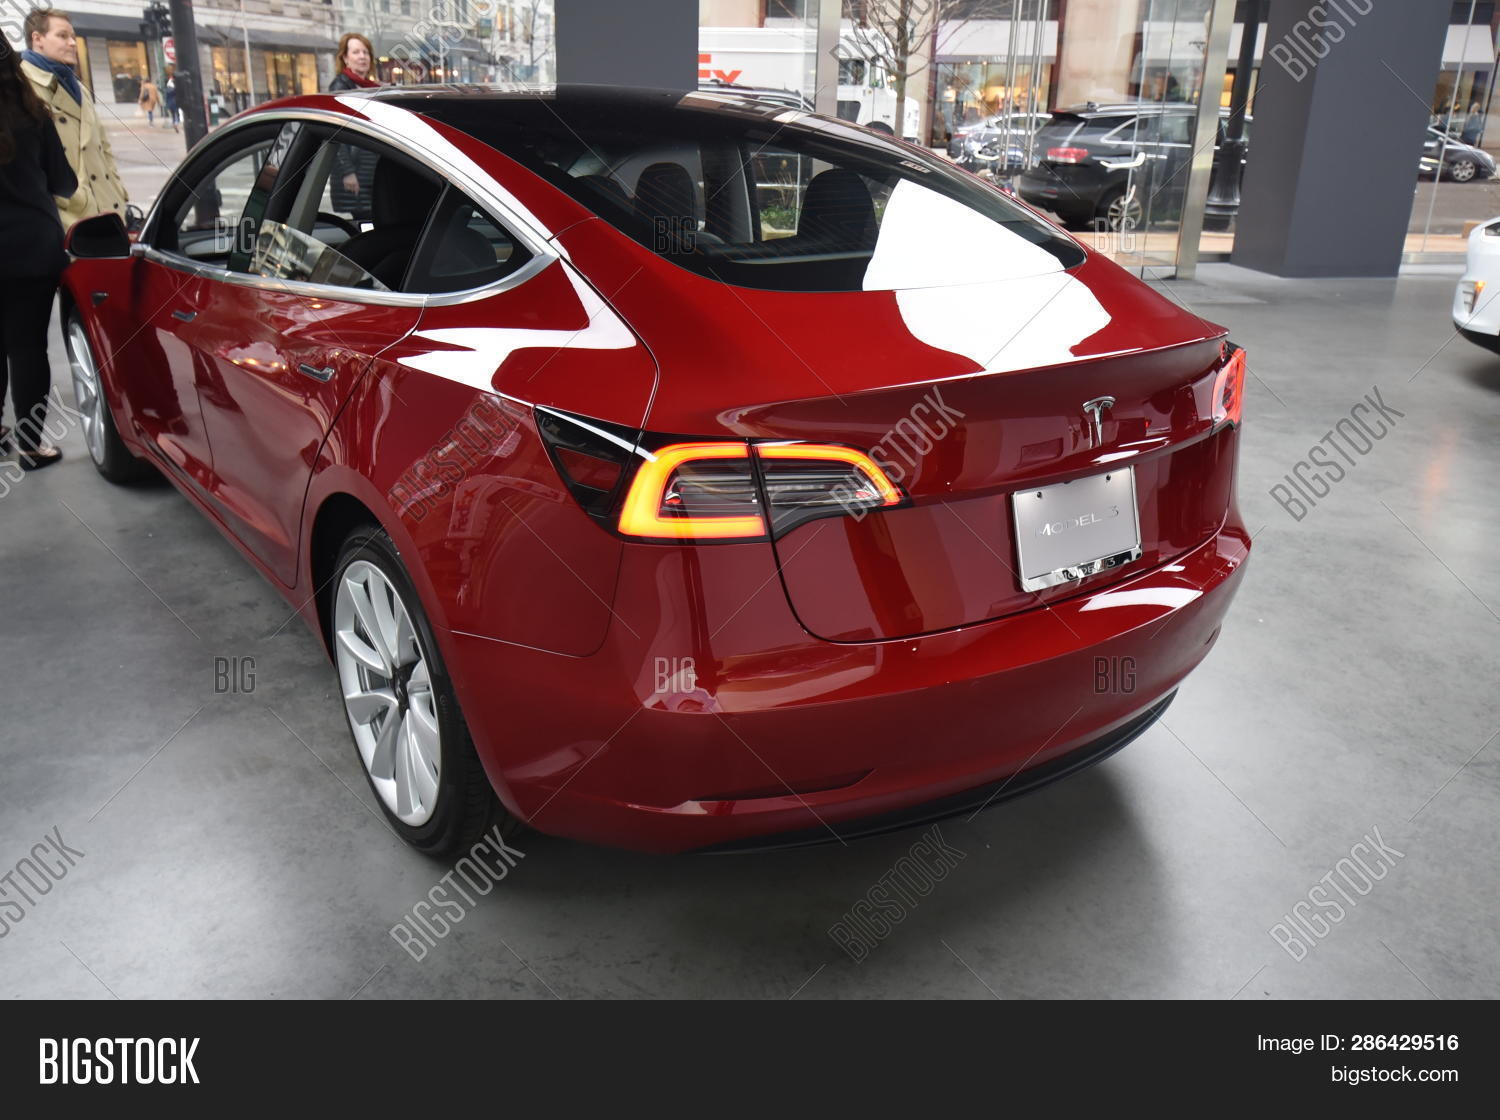 Car Dealerships In Chicago >> Tesla Red Model 3 All Image Photo Free Trial Bigstock